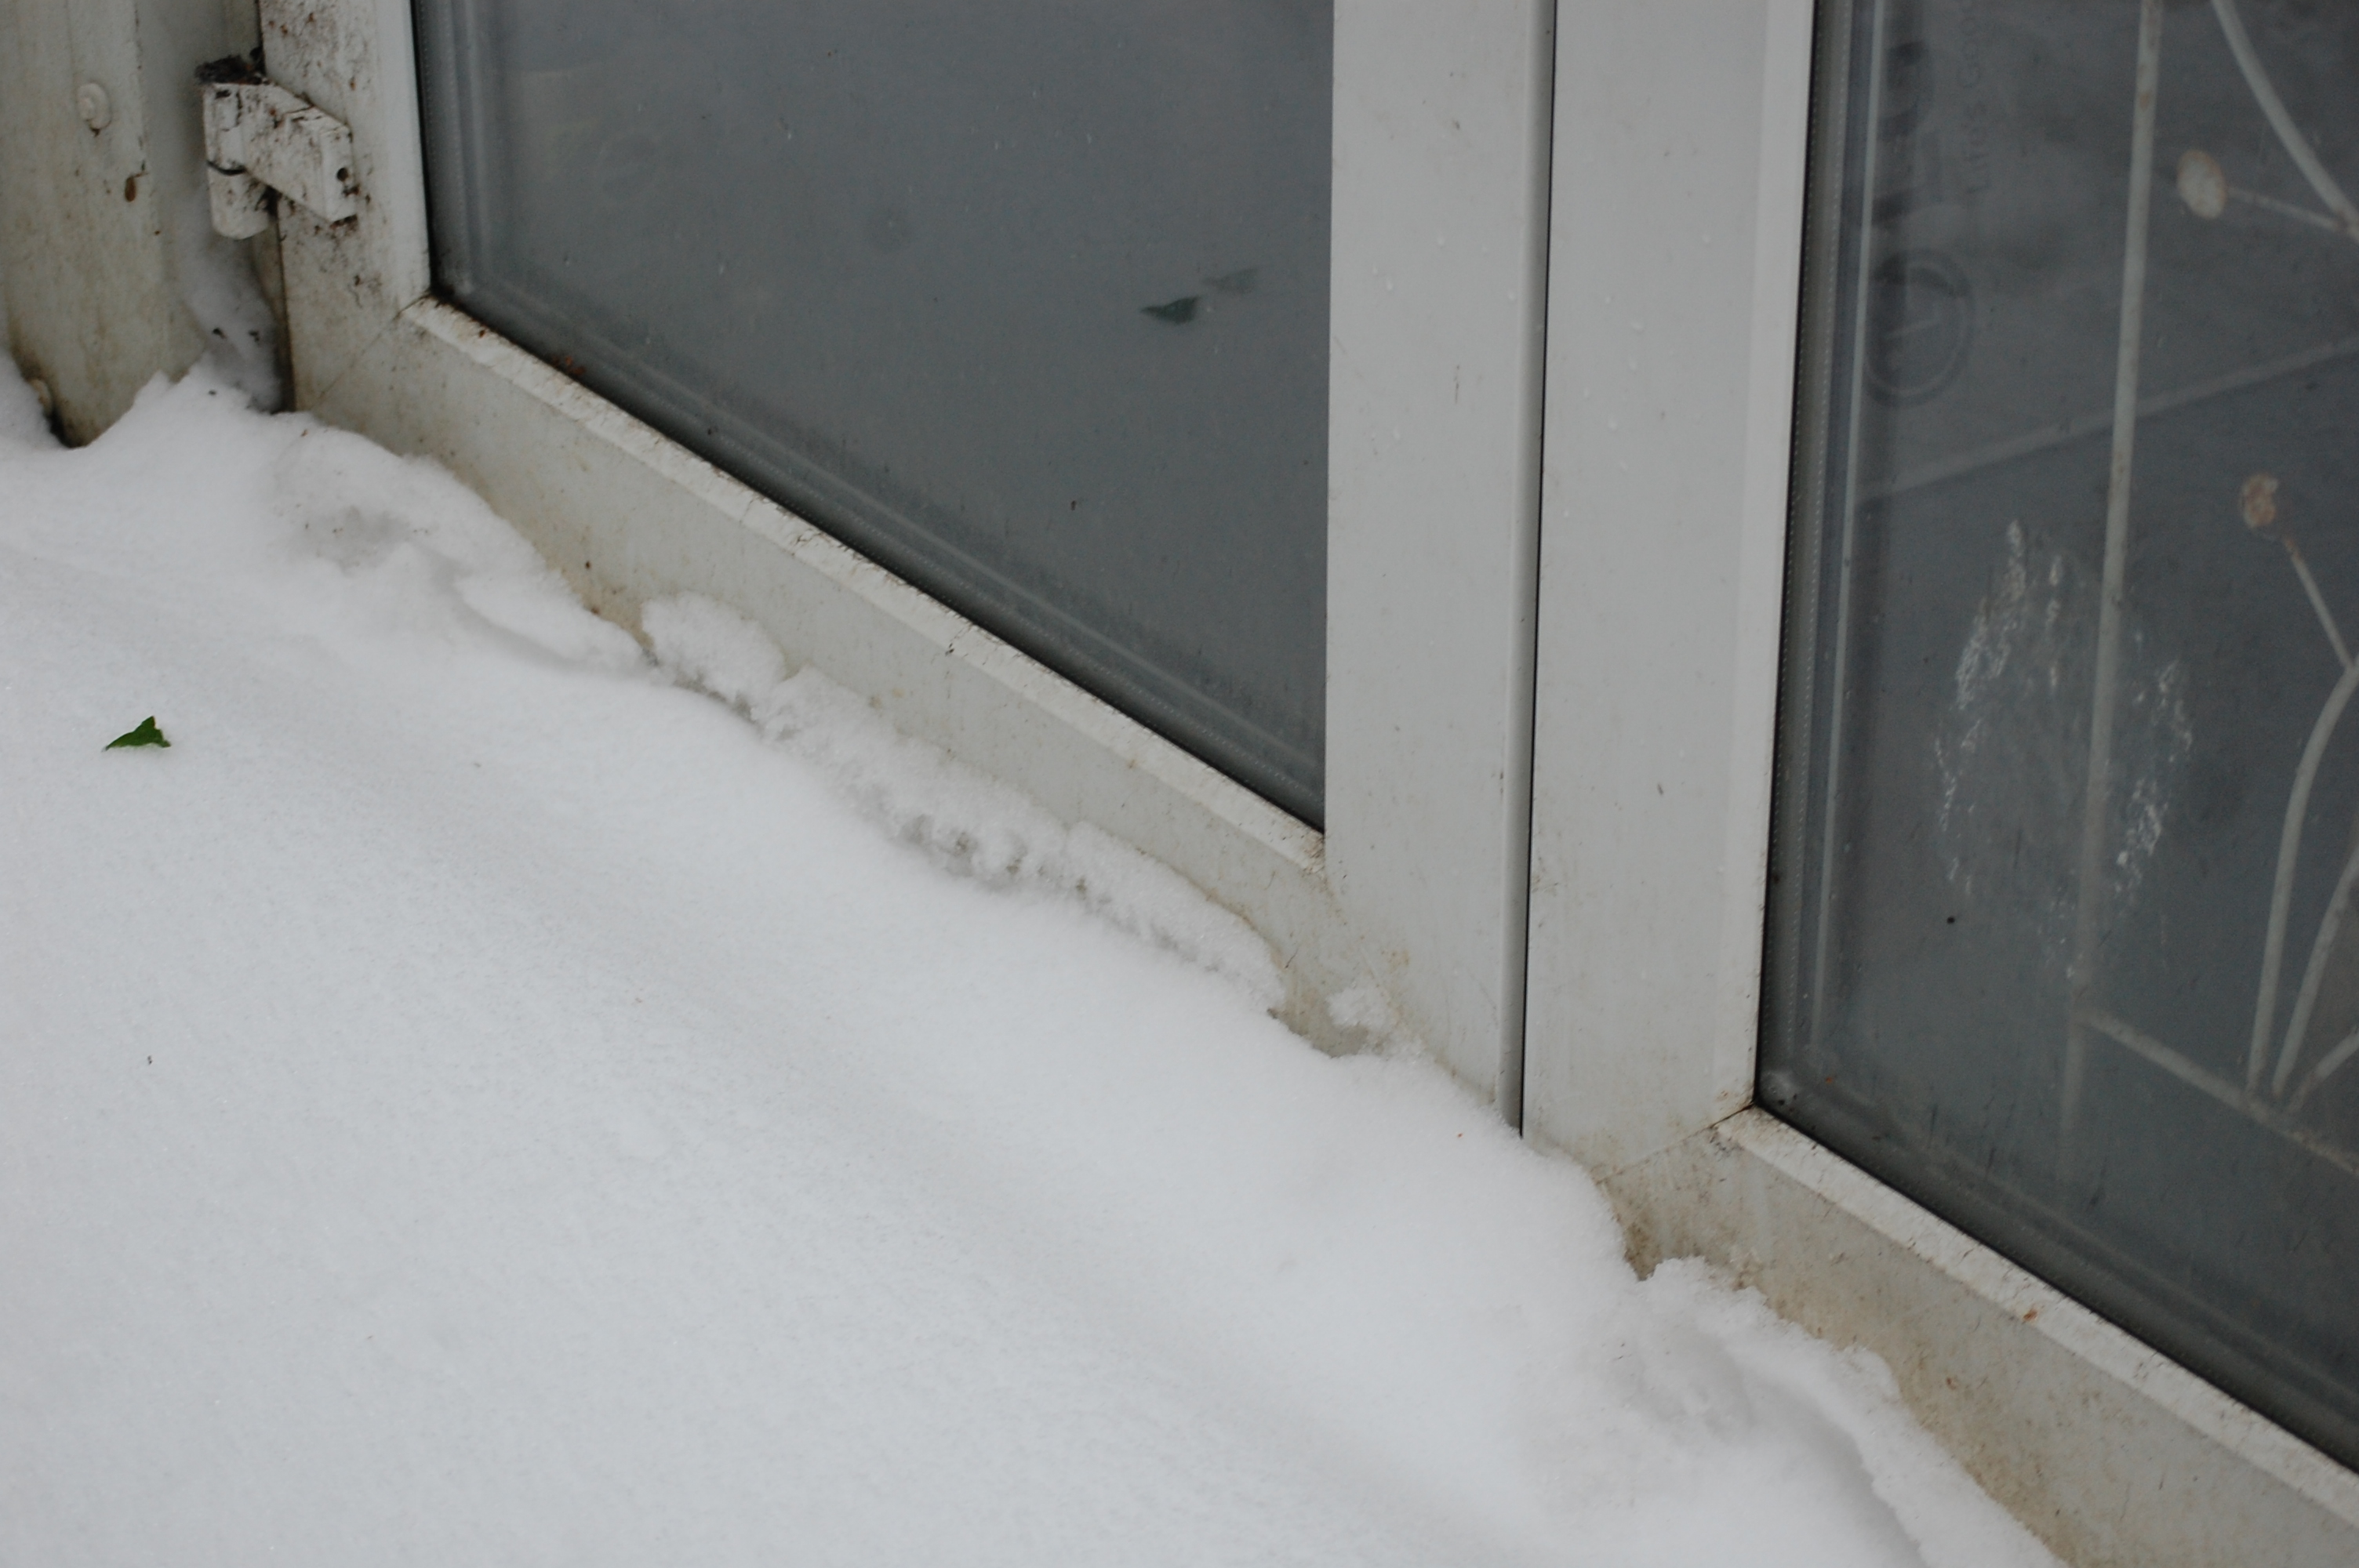 Doors can be jammed, and mechanisms can be damaged when opened or closed against the weight of snow and ice.